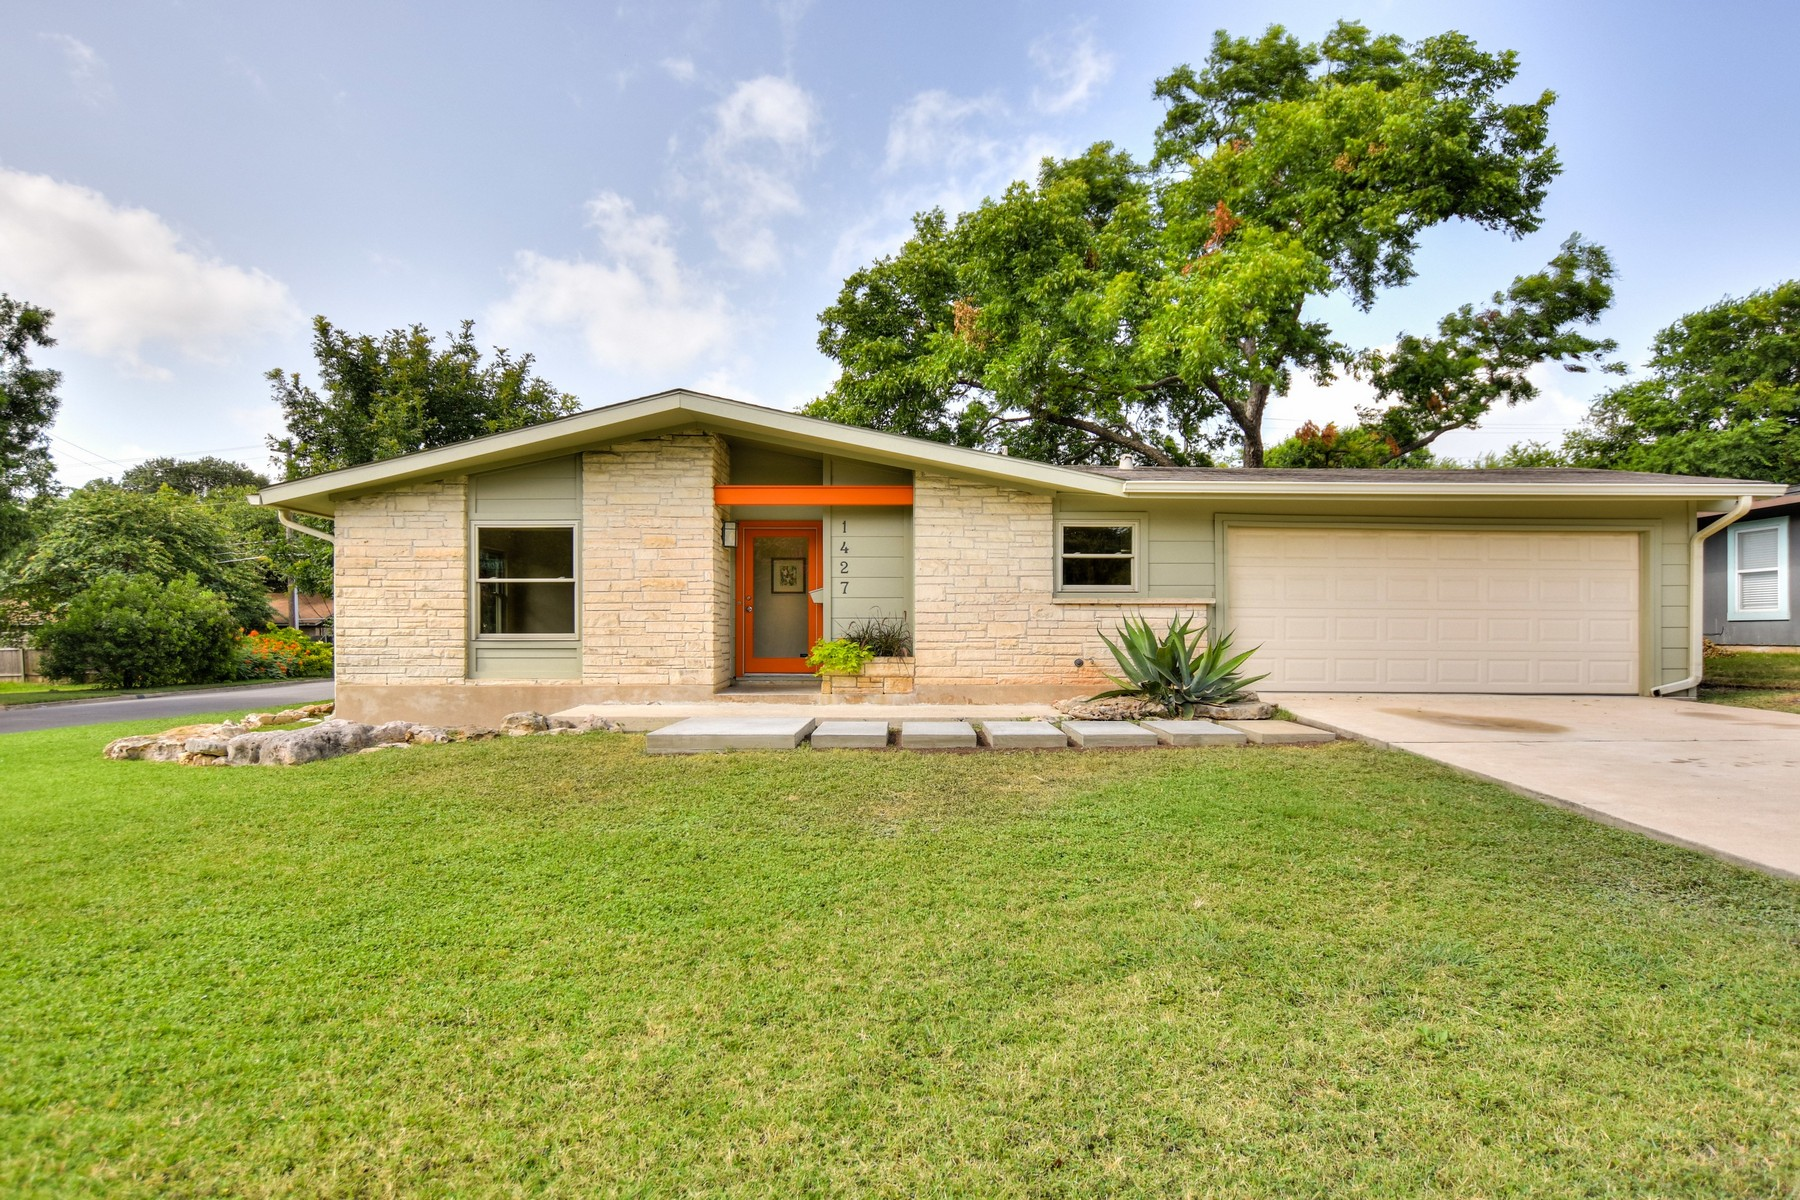 Single Family Home for Sale at Gaston Park Style 1427 Yorkshire Dr Austin, Texas 78723 United States